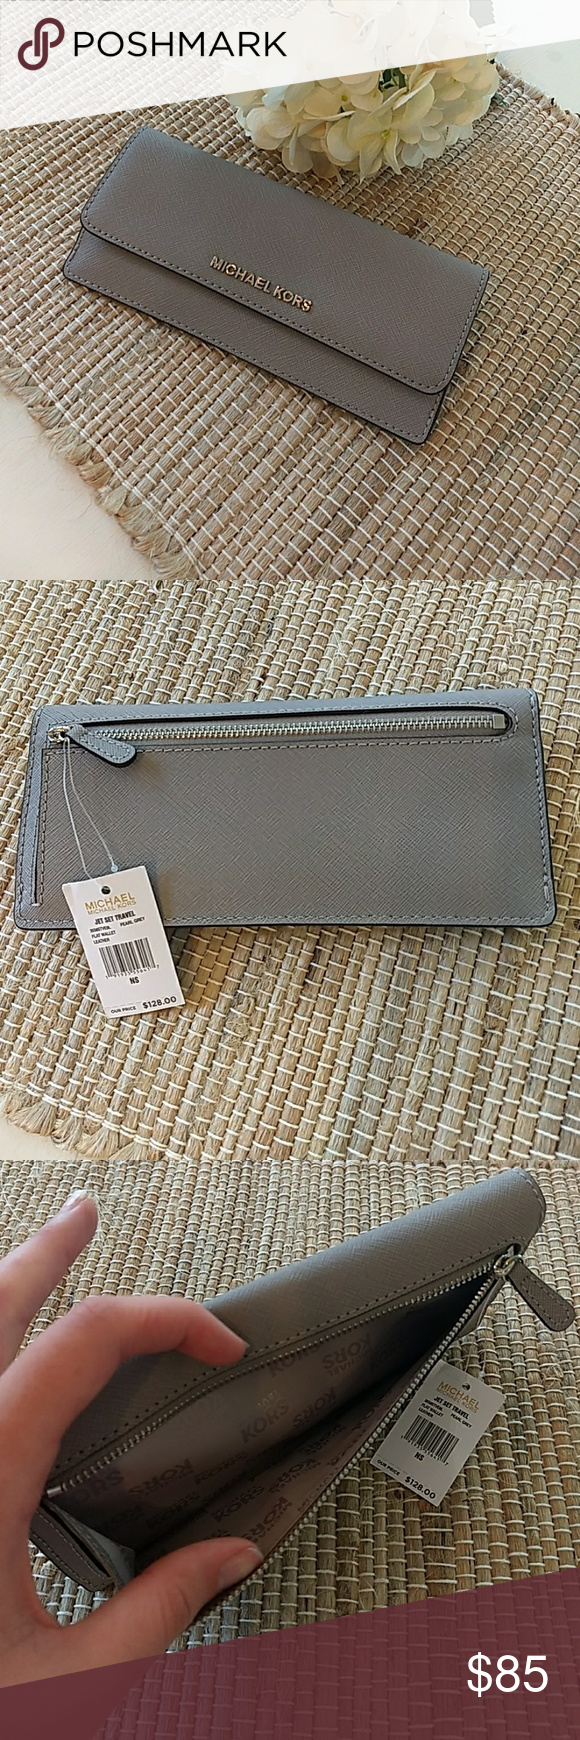 e22cdfca428920 MK Jet Set Flat Wallet Brand new with tags attached. *Back pocket for  change *8 credit card slots *Color: Pearl Grey *Saffiano Leather and silver  hardware ...